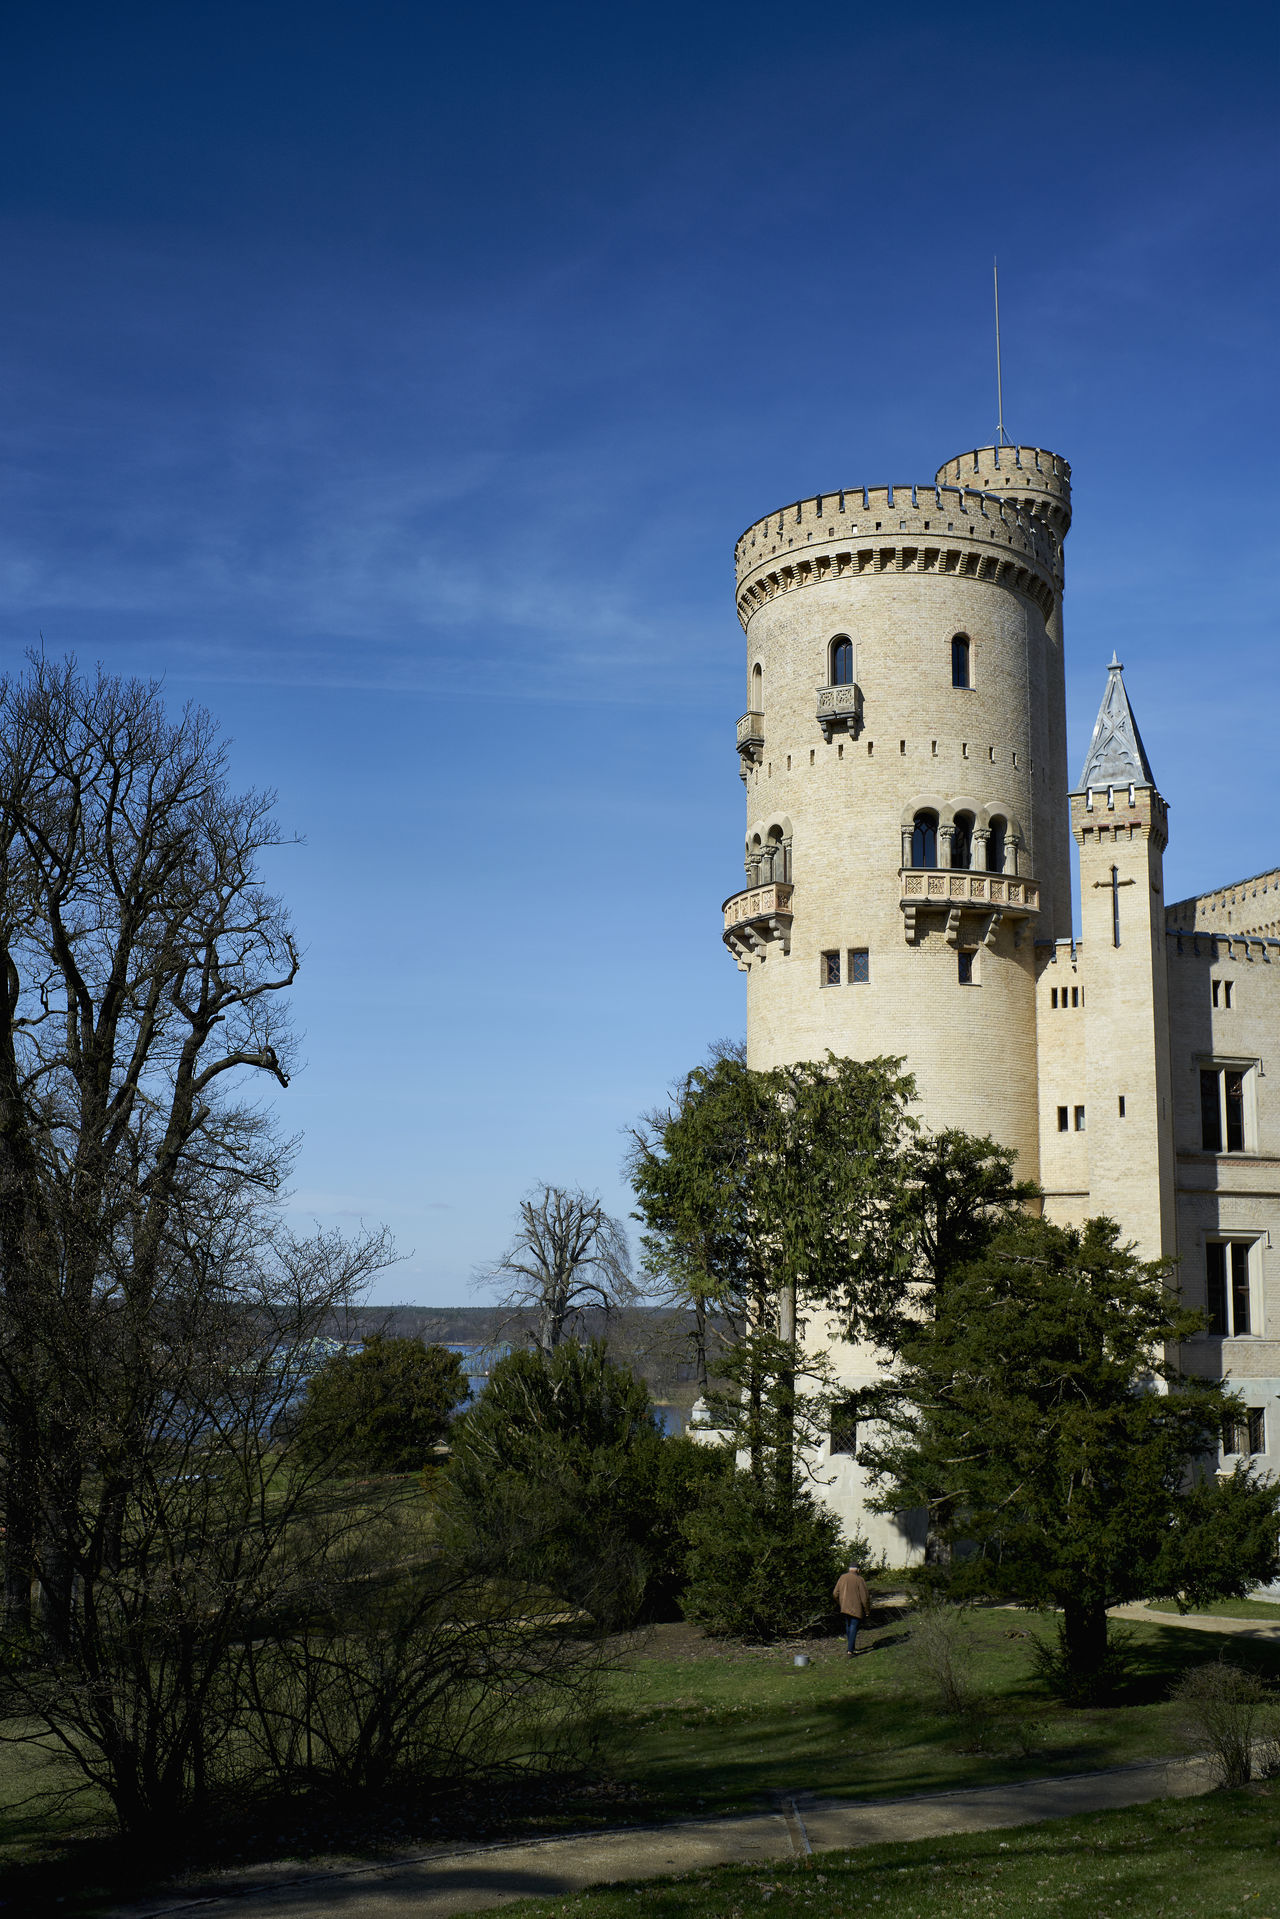 Architecture Babelsberg Babelsberger Park Blue Building Exterior Built Structure City Clear Sky Clock Clock Tower Day History Medieval No People Outdoors Potsdam Schloß Babelsberg Sky Tower Travel Destinations Tree